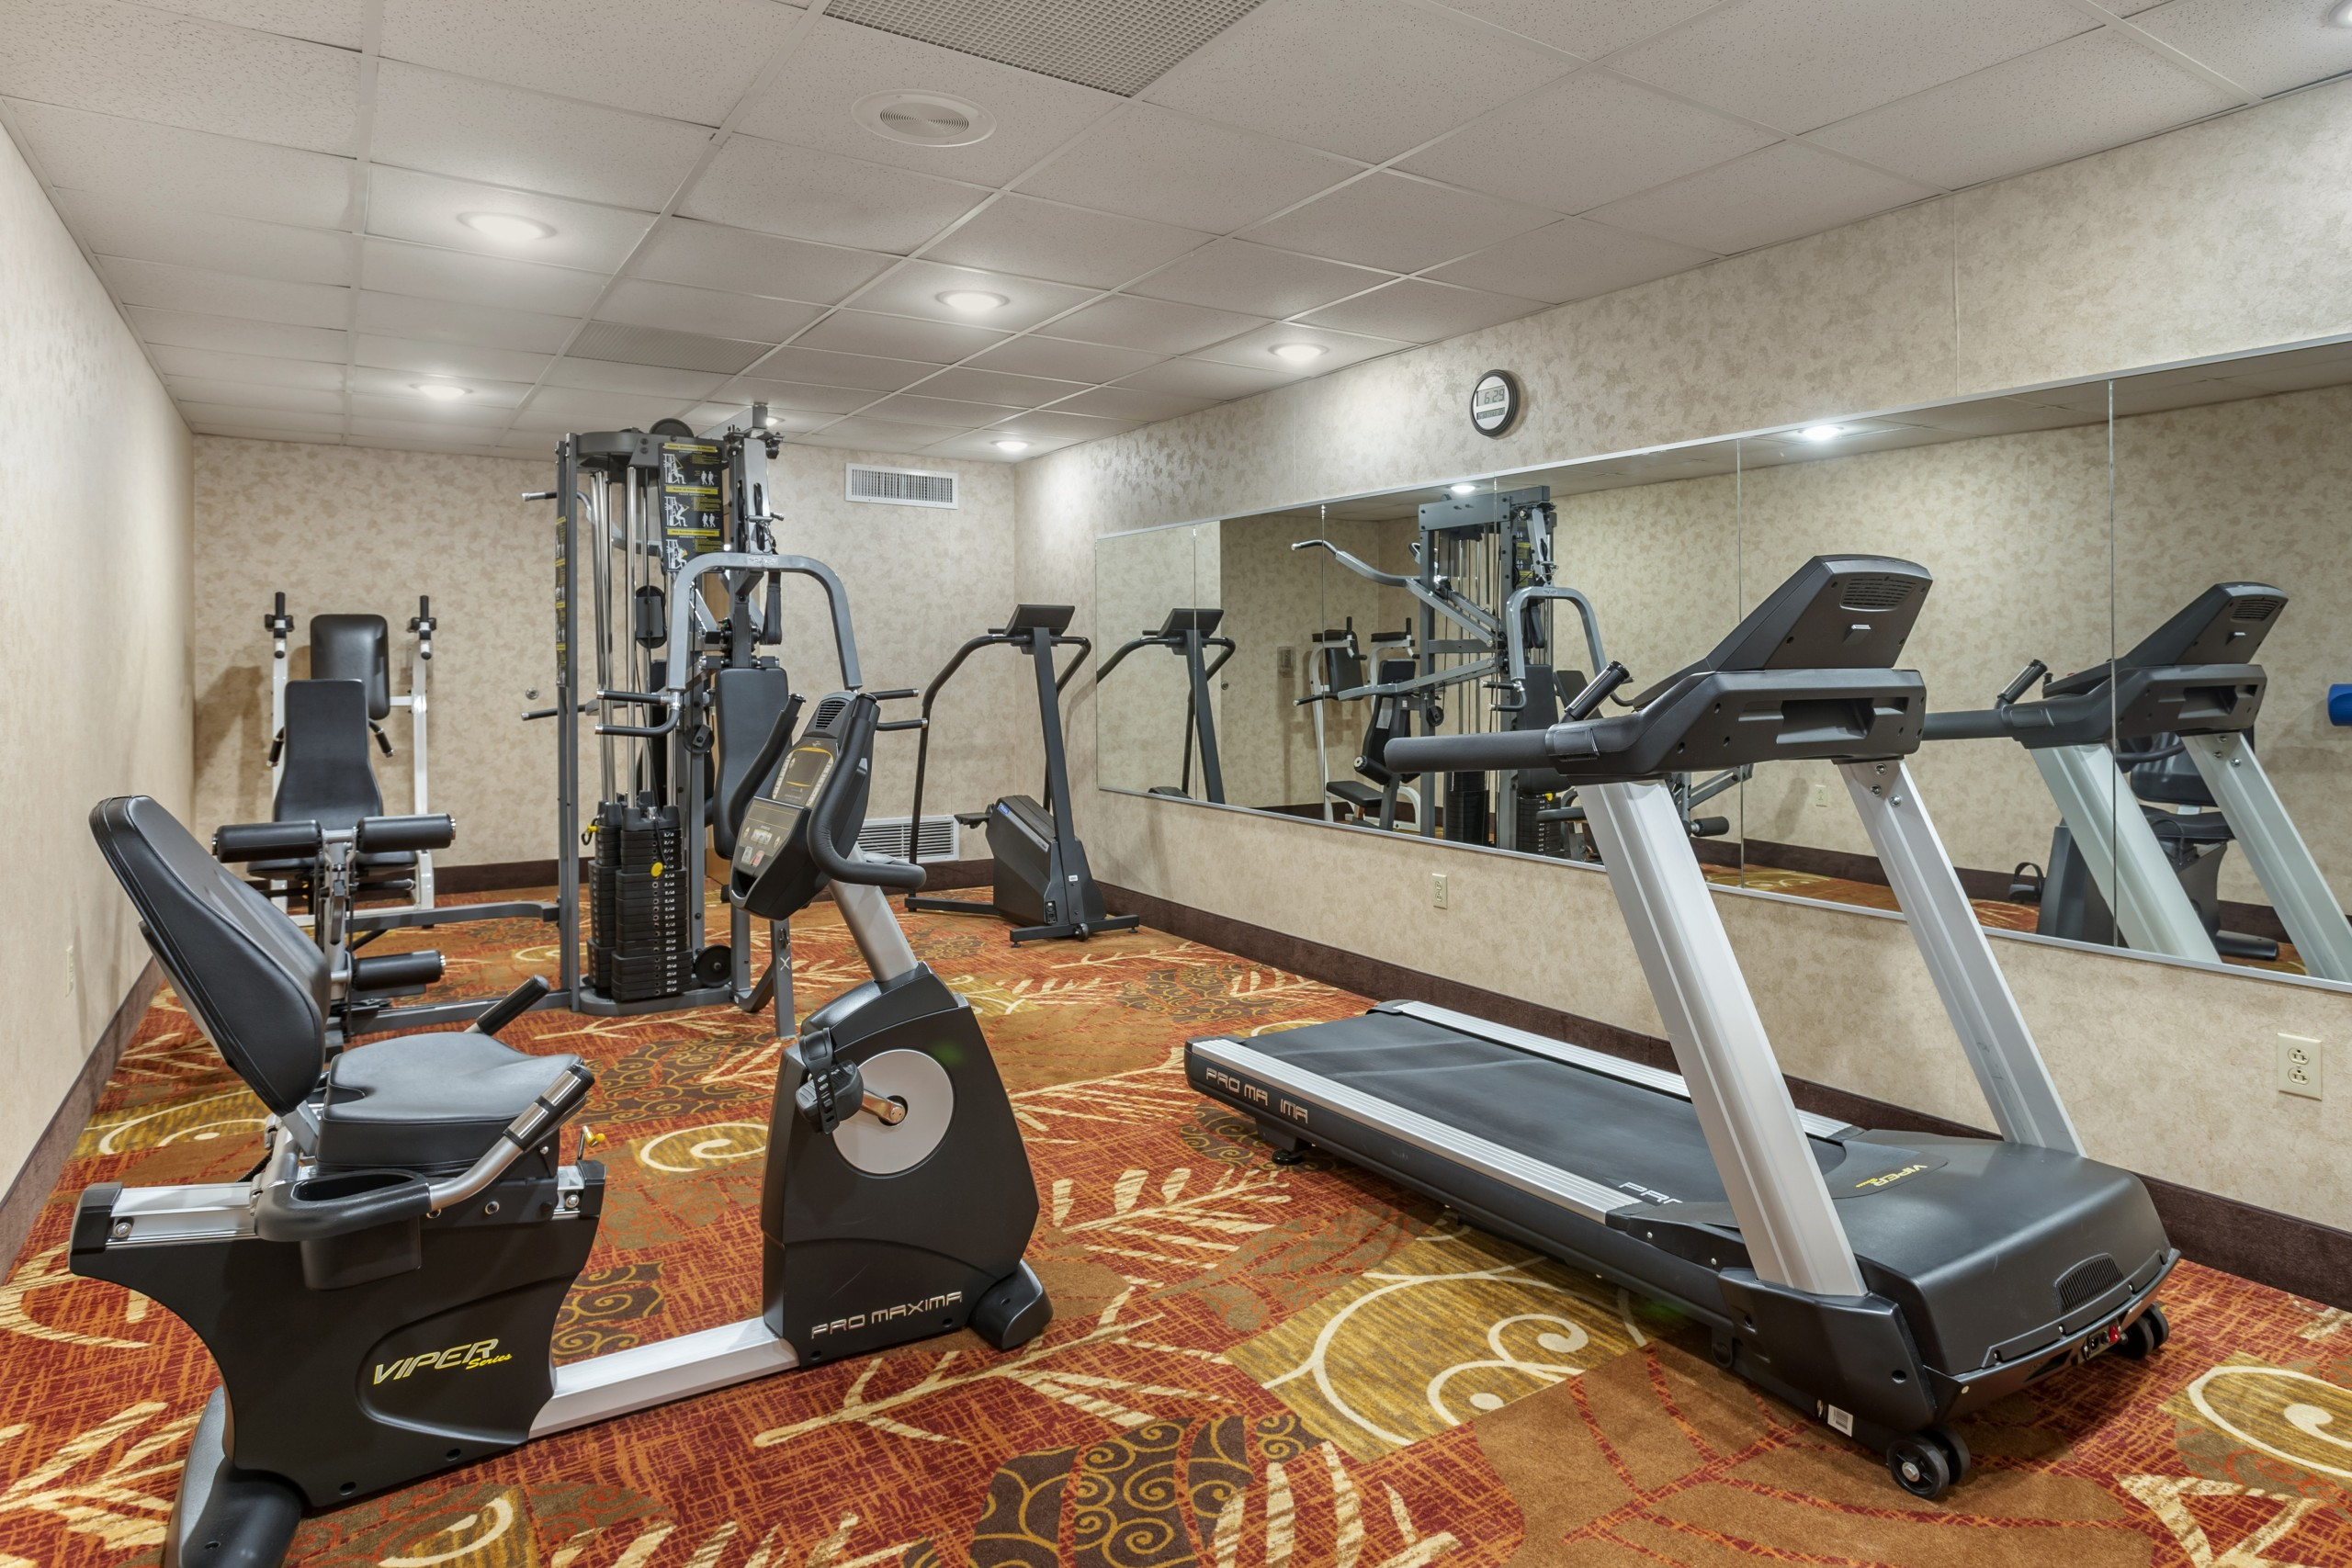 Branson Missouri Hotel Comfort inn and suites fitness room